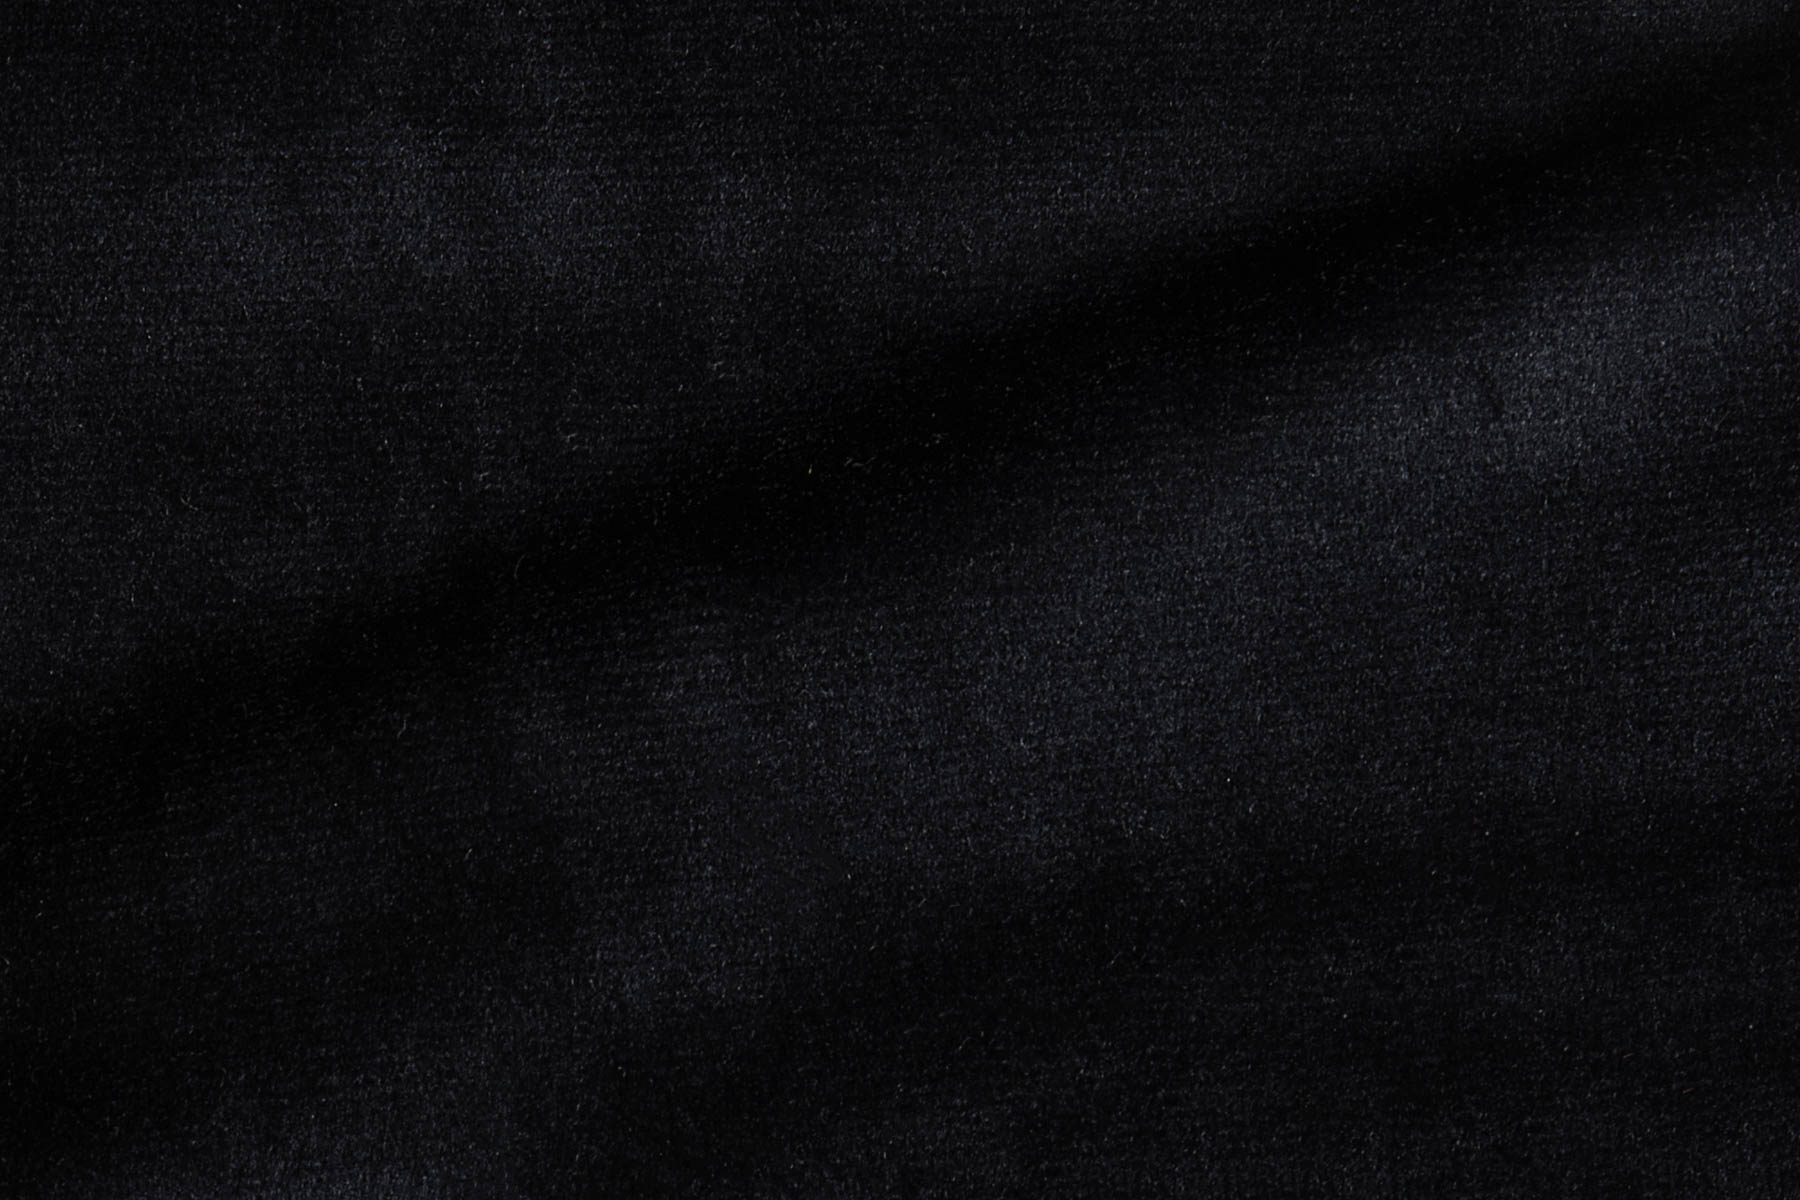 RADIANCE VELVET BLUISH BLACK Fabric by KOKET